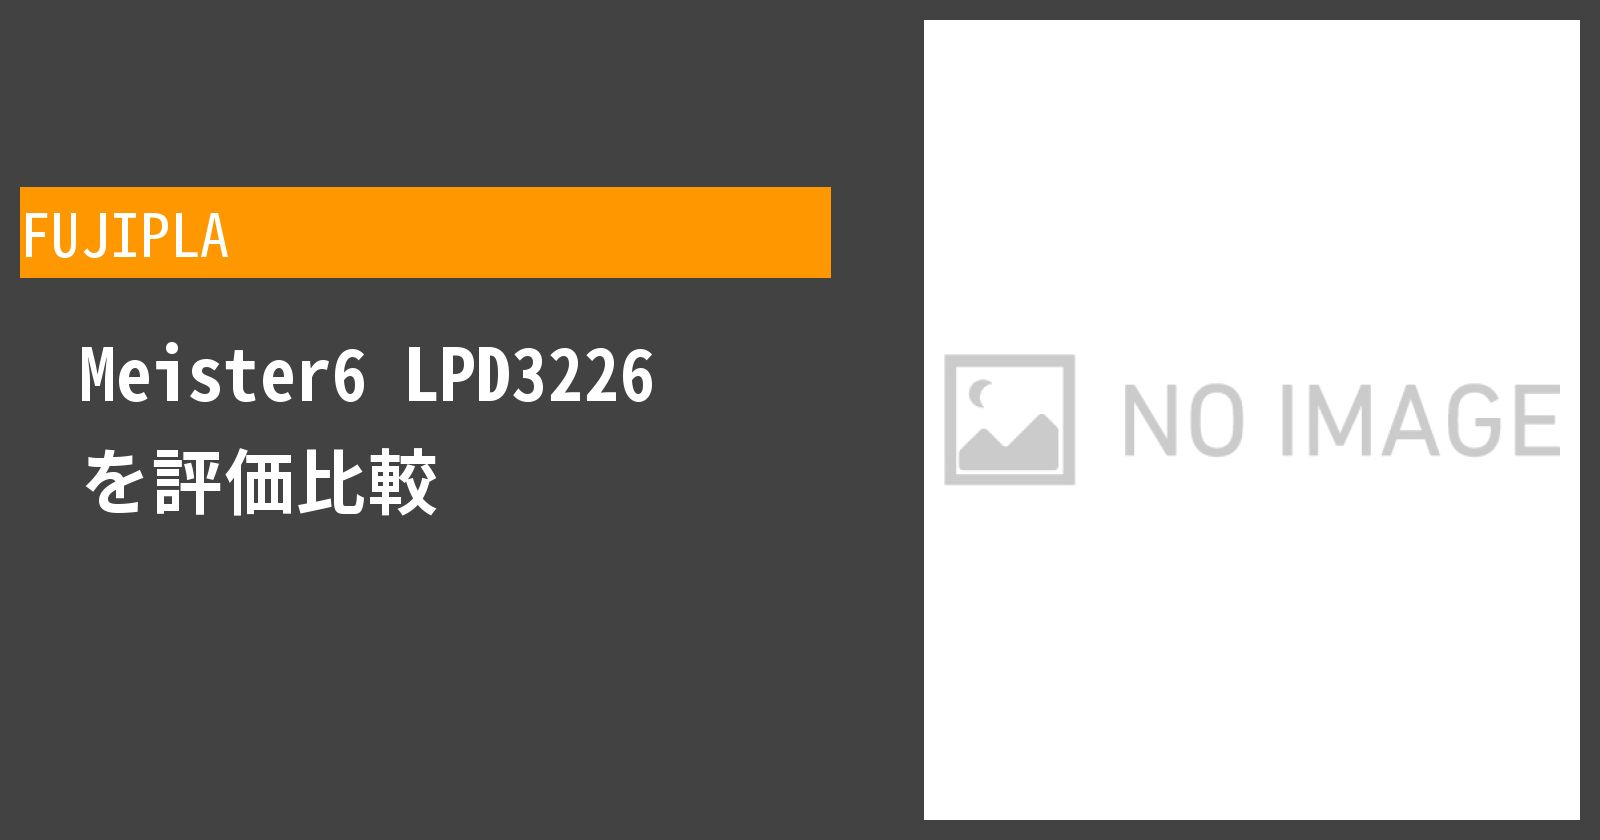 Meister6 LPD3226を徹底評価